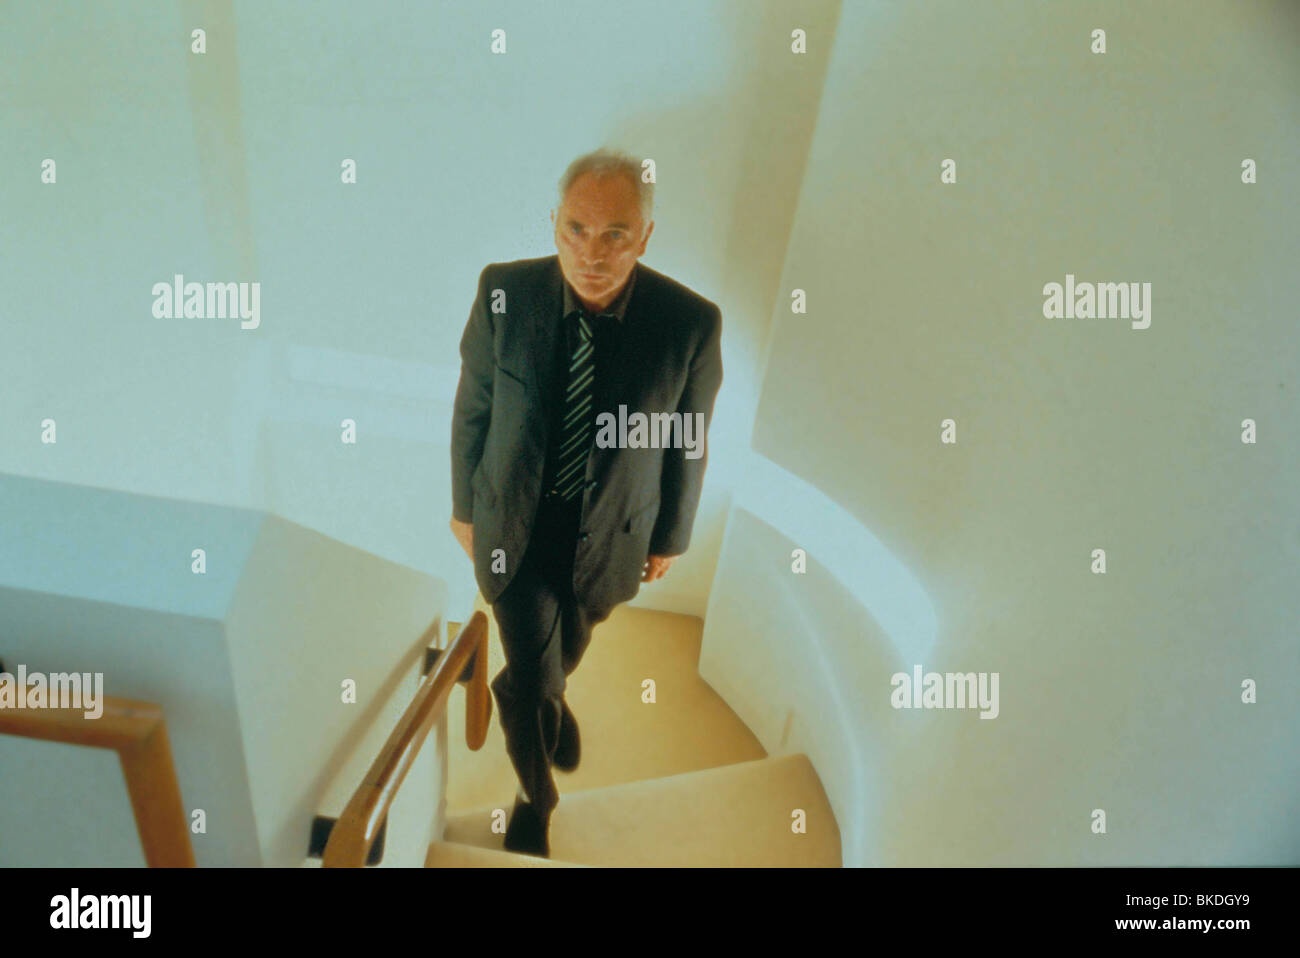 THE LIMEY -1999 TERENCE STAMP - Stock Image